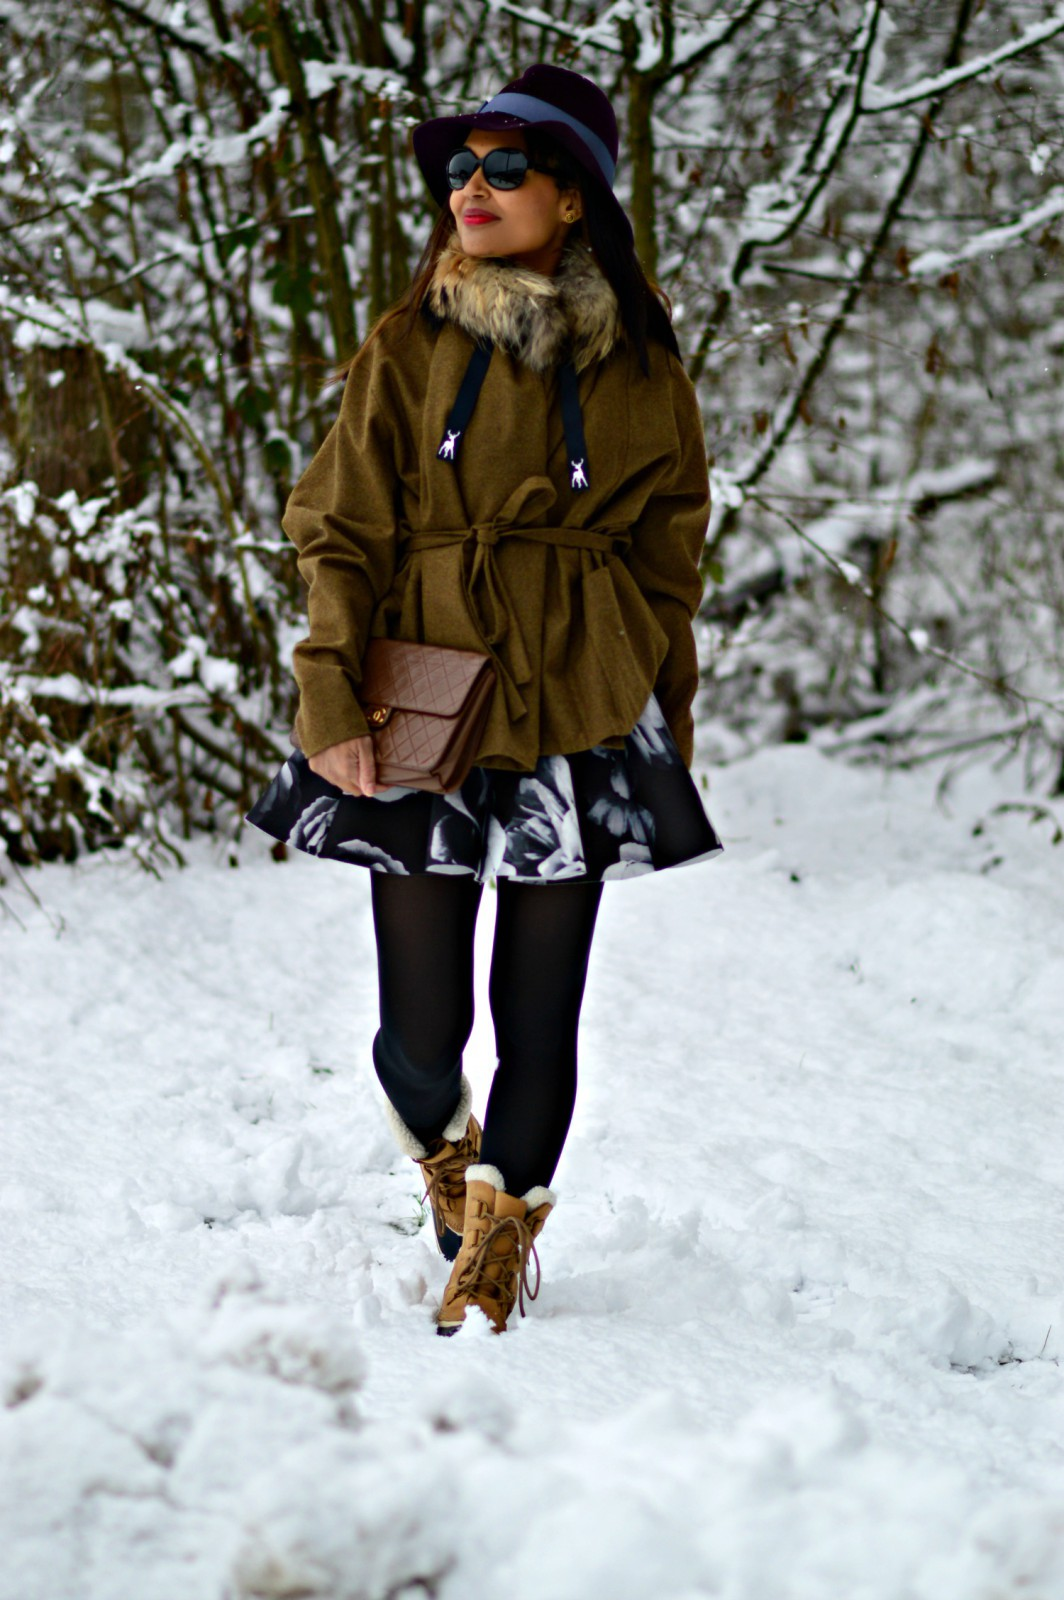 Couture hat/ vanja jocic/ currently wearing / sorel boots / snowboots